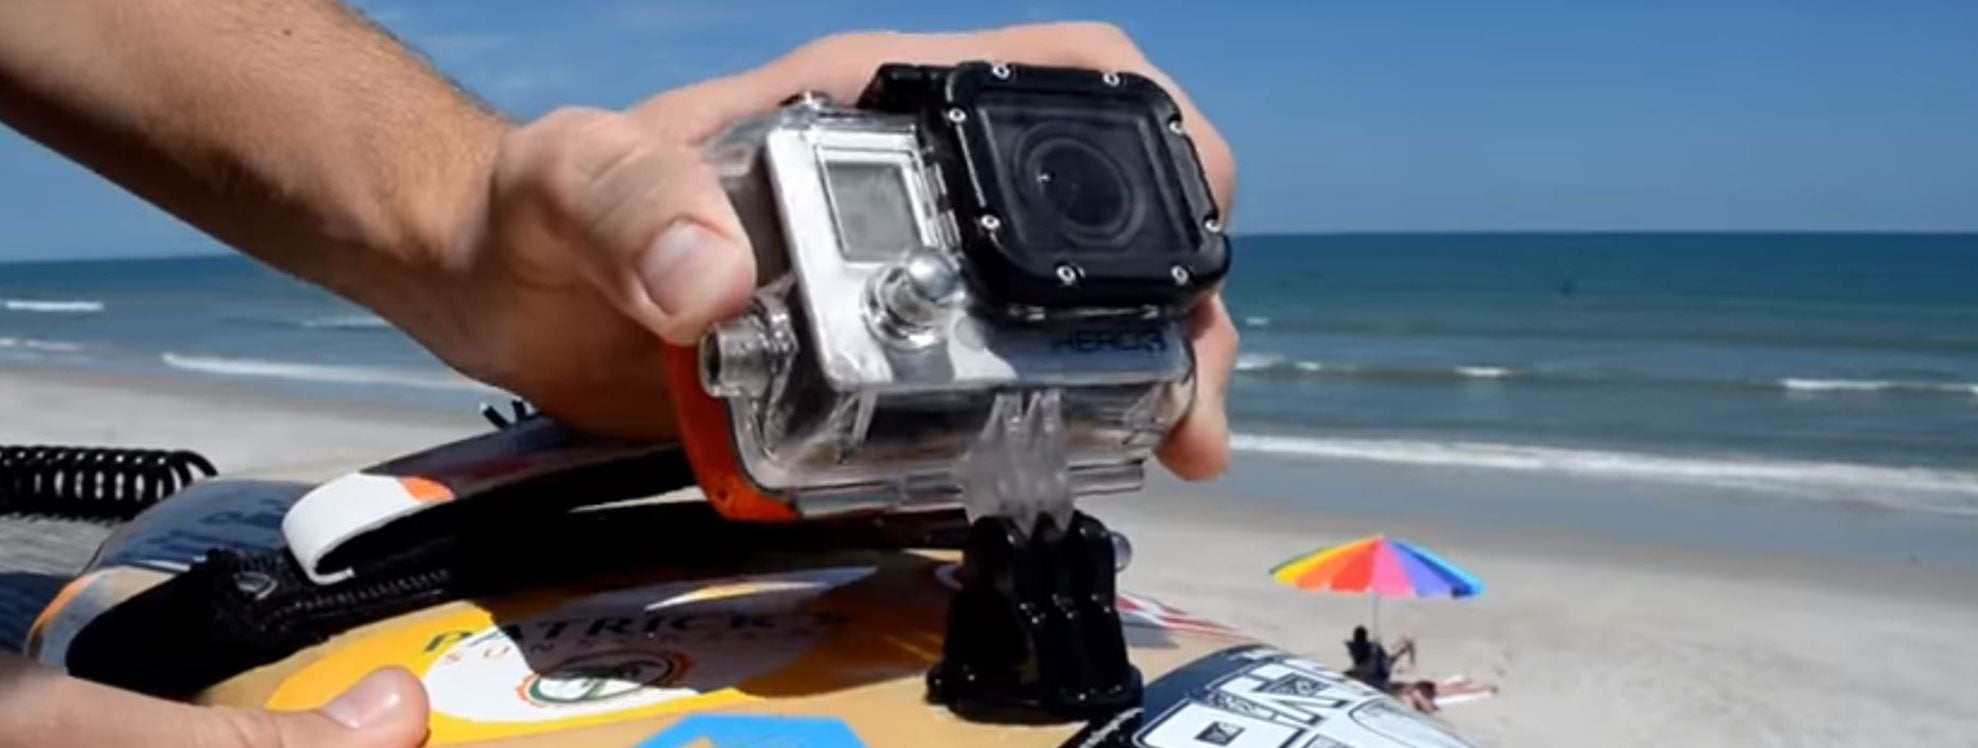 How to set up a go pro on a handboard